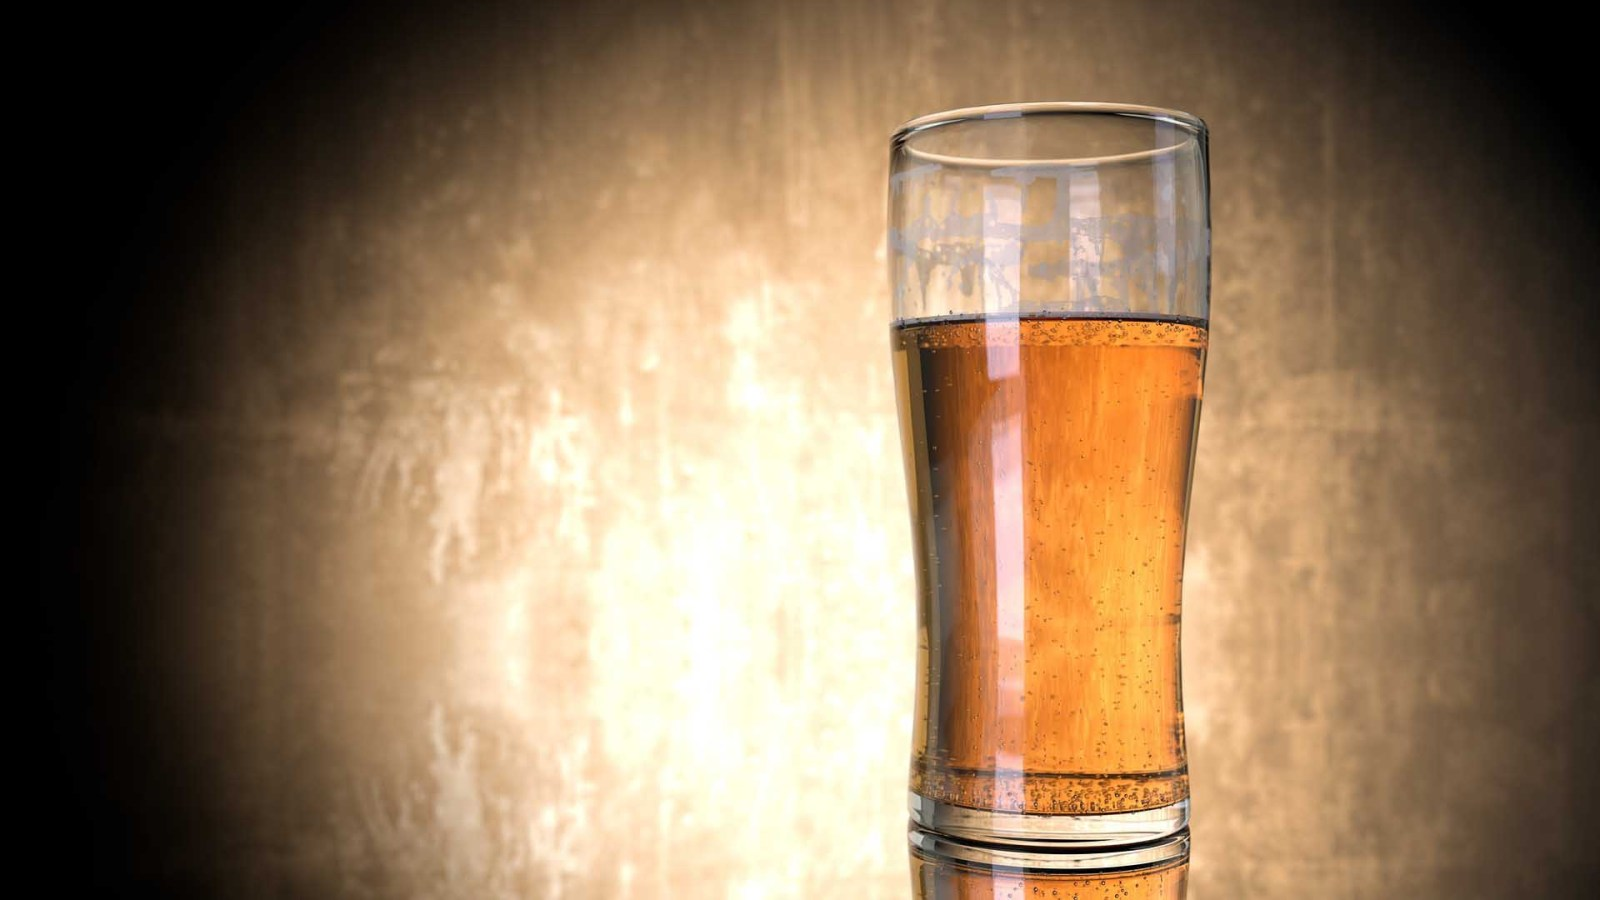 What is a pint? How is a pint of beer measured